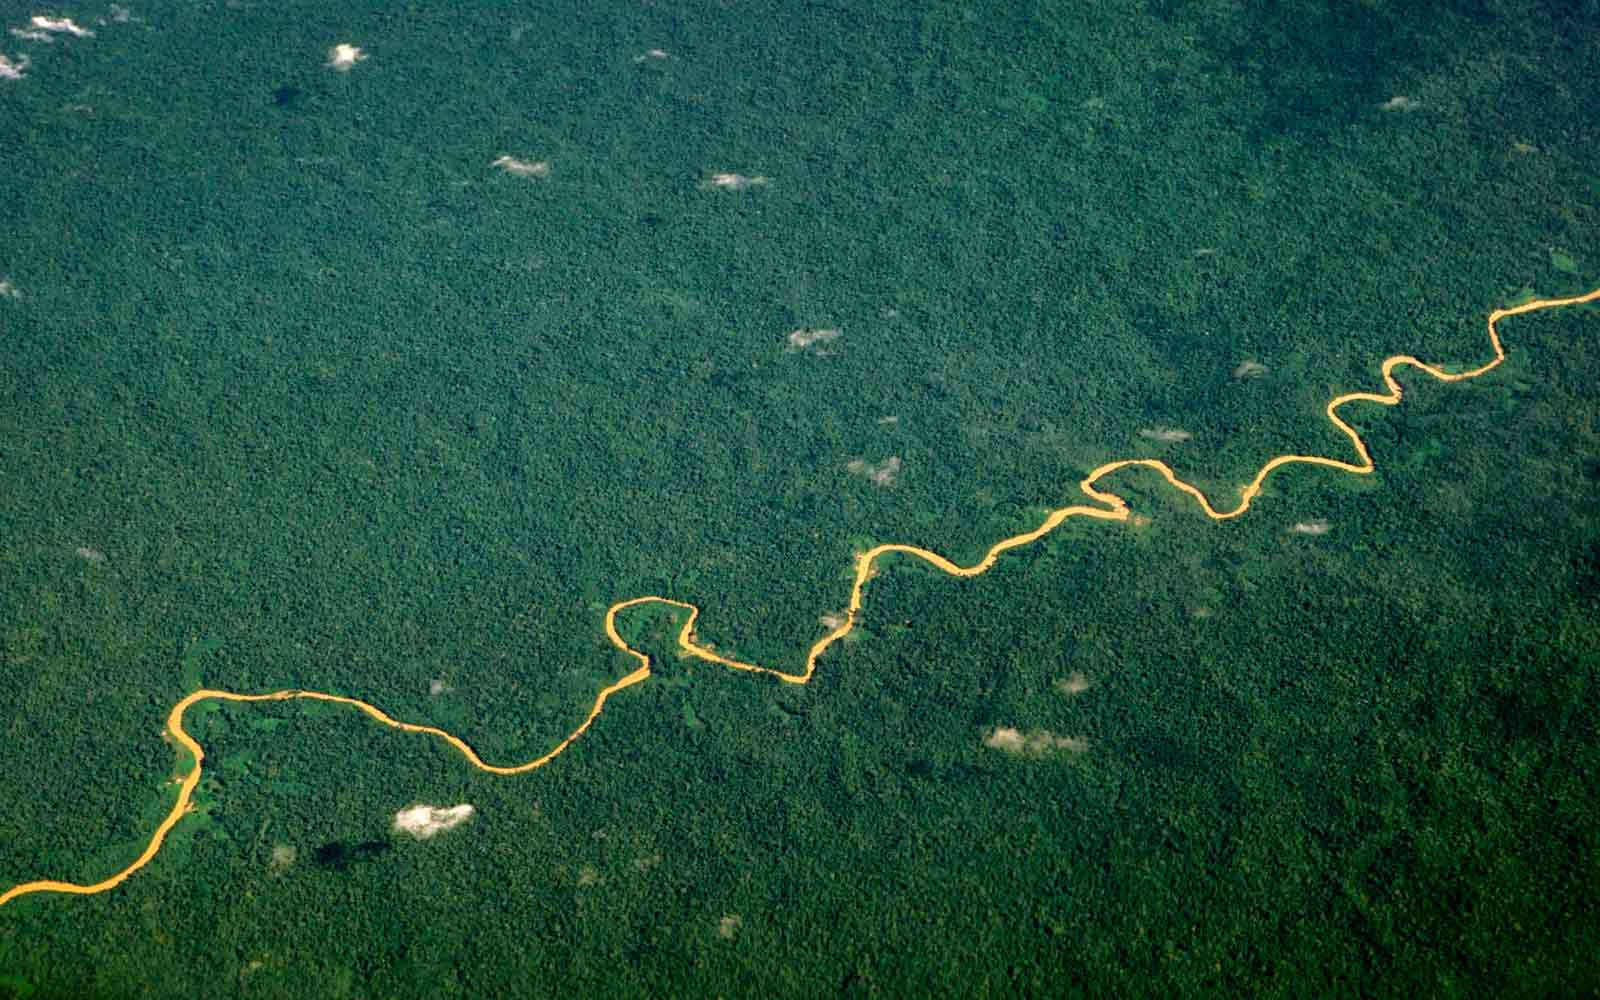 The Longest River in the World